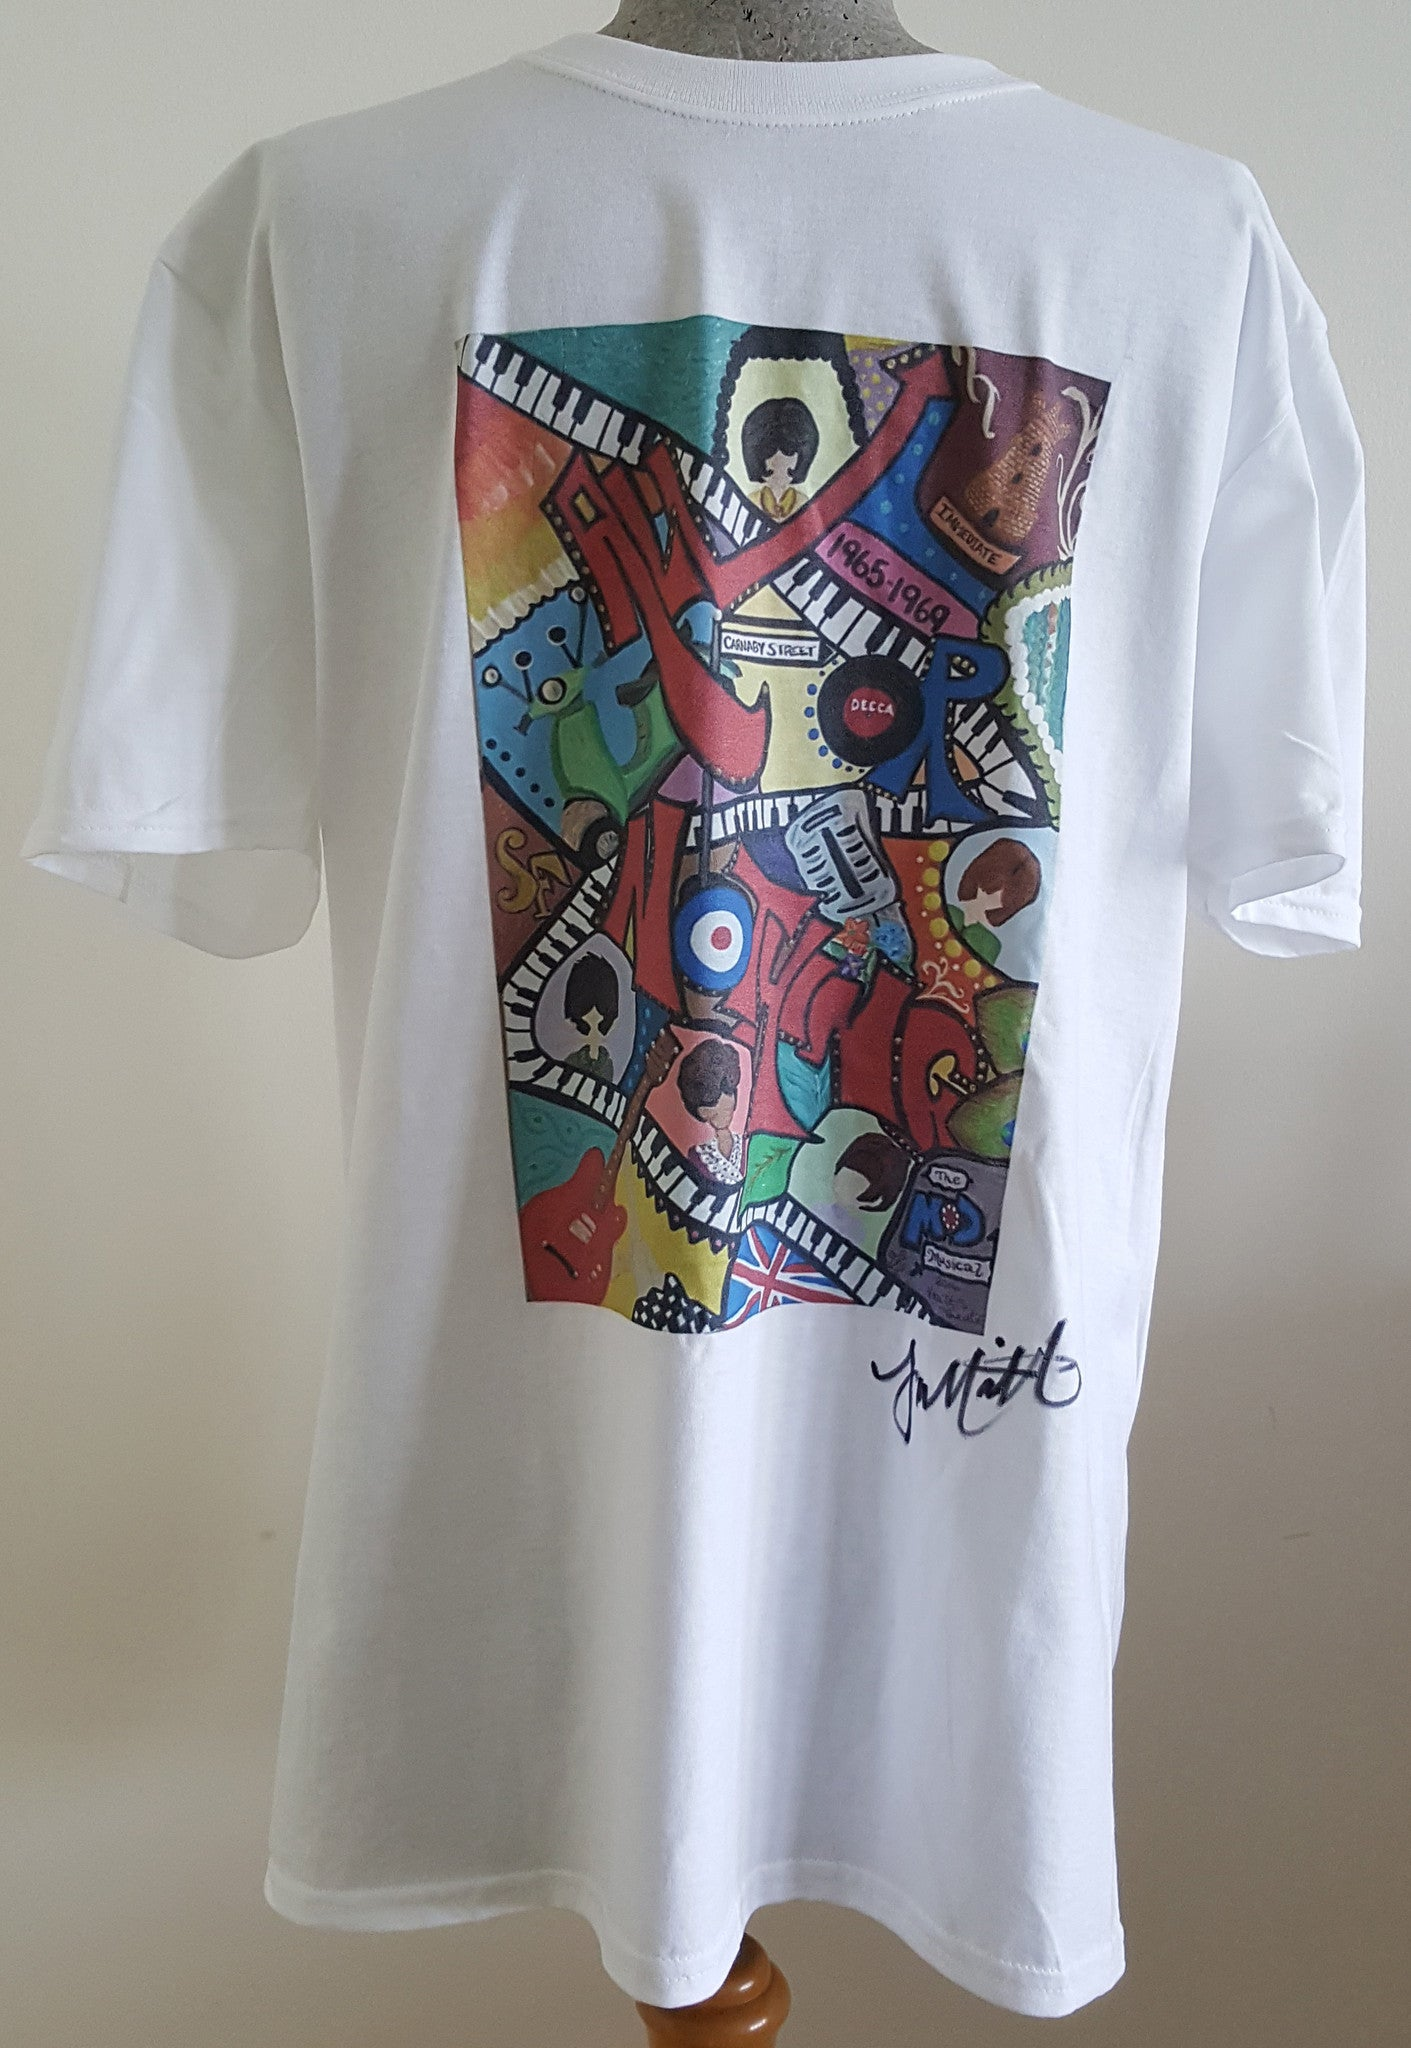 Tee Shirt Abstract by Tonya Marriott